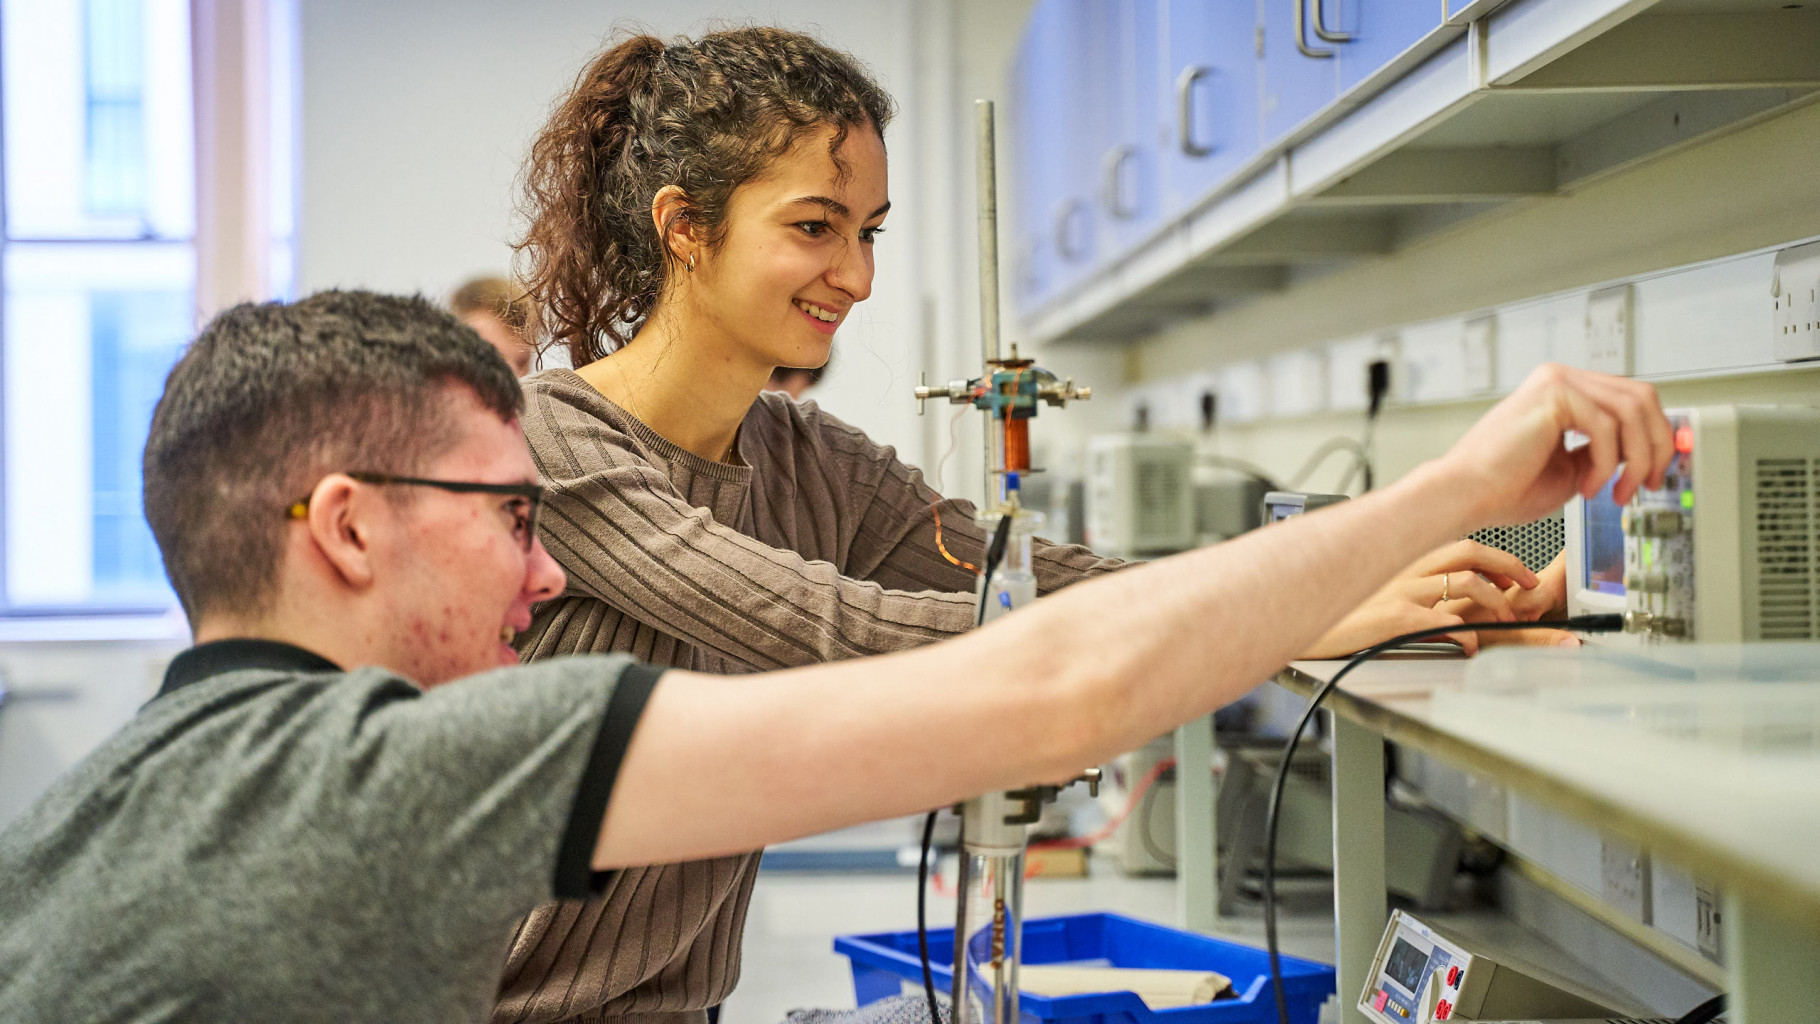 Gain work experience at the University of Bath